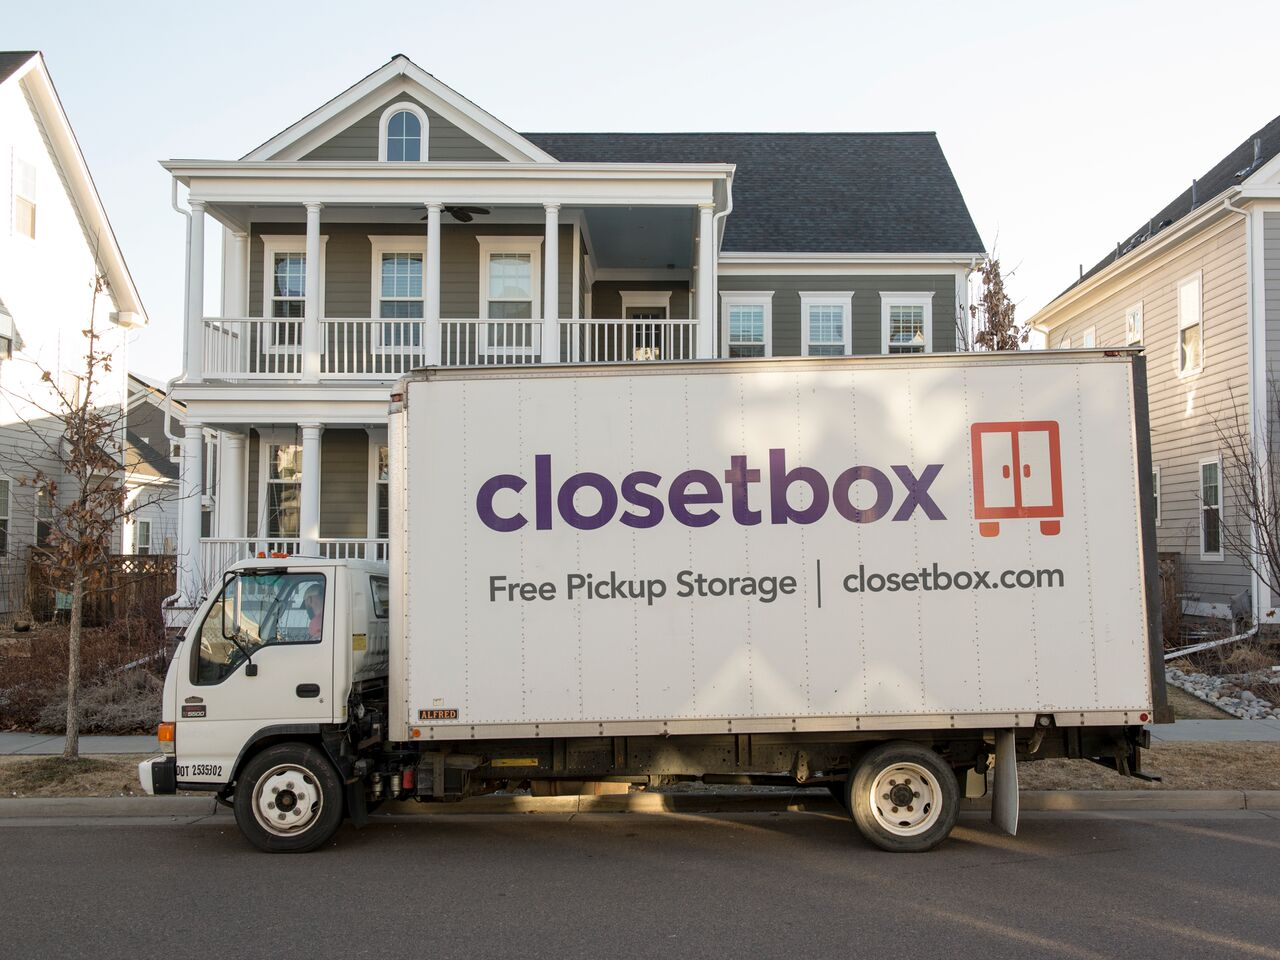 Closetbox - Store Your Stuff with a Click of a Button